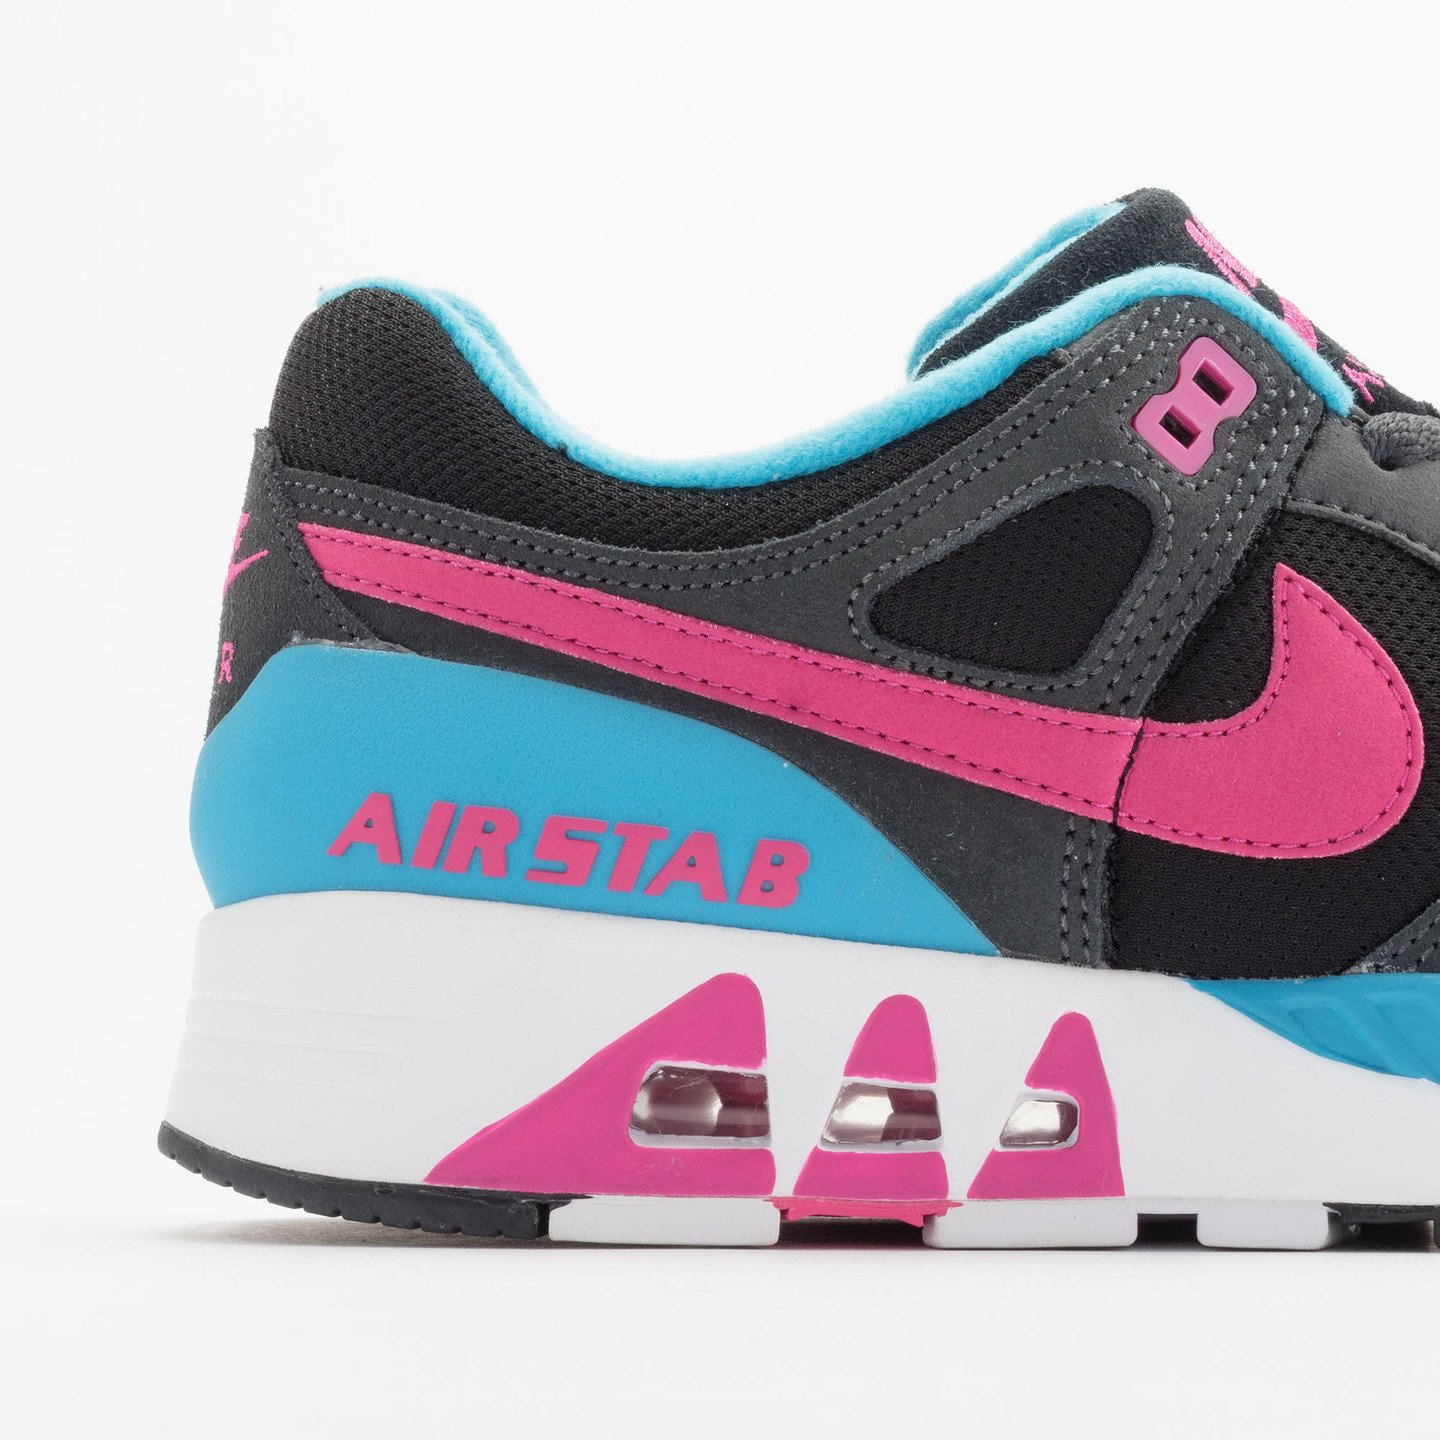 Nike Air Stab Black/Hot Pink-Anthrct-Bl Lgn 312451-004-42.5